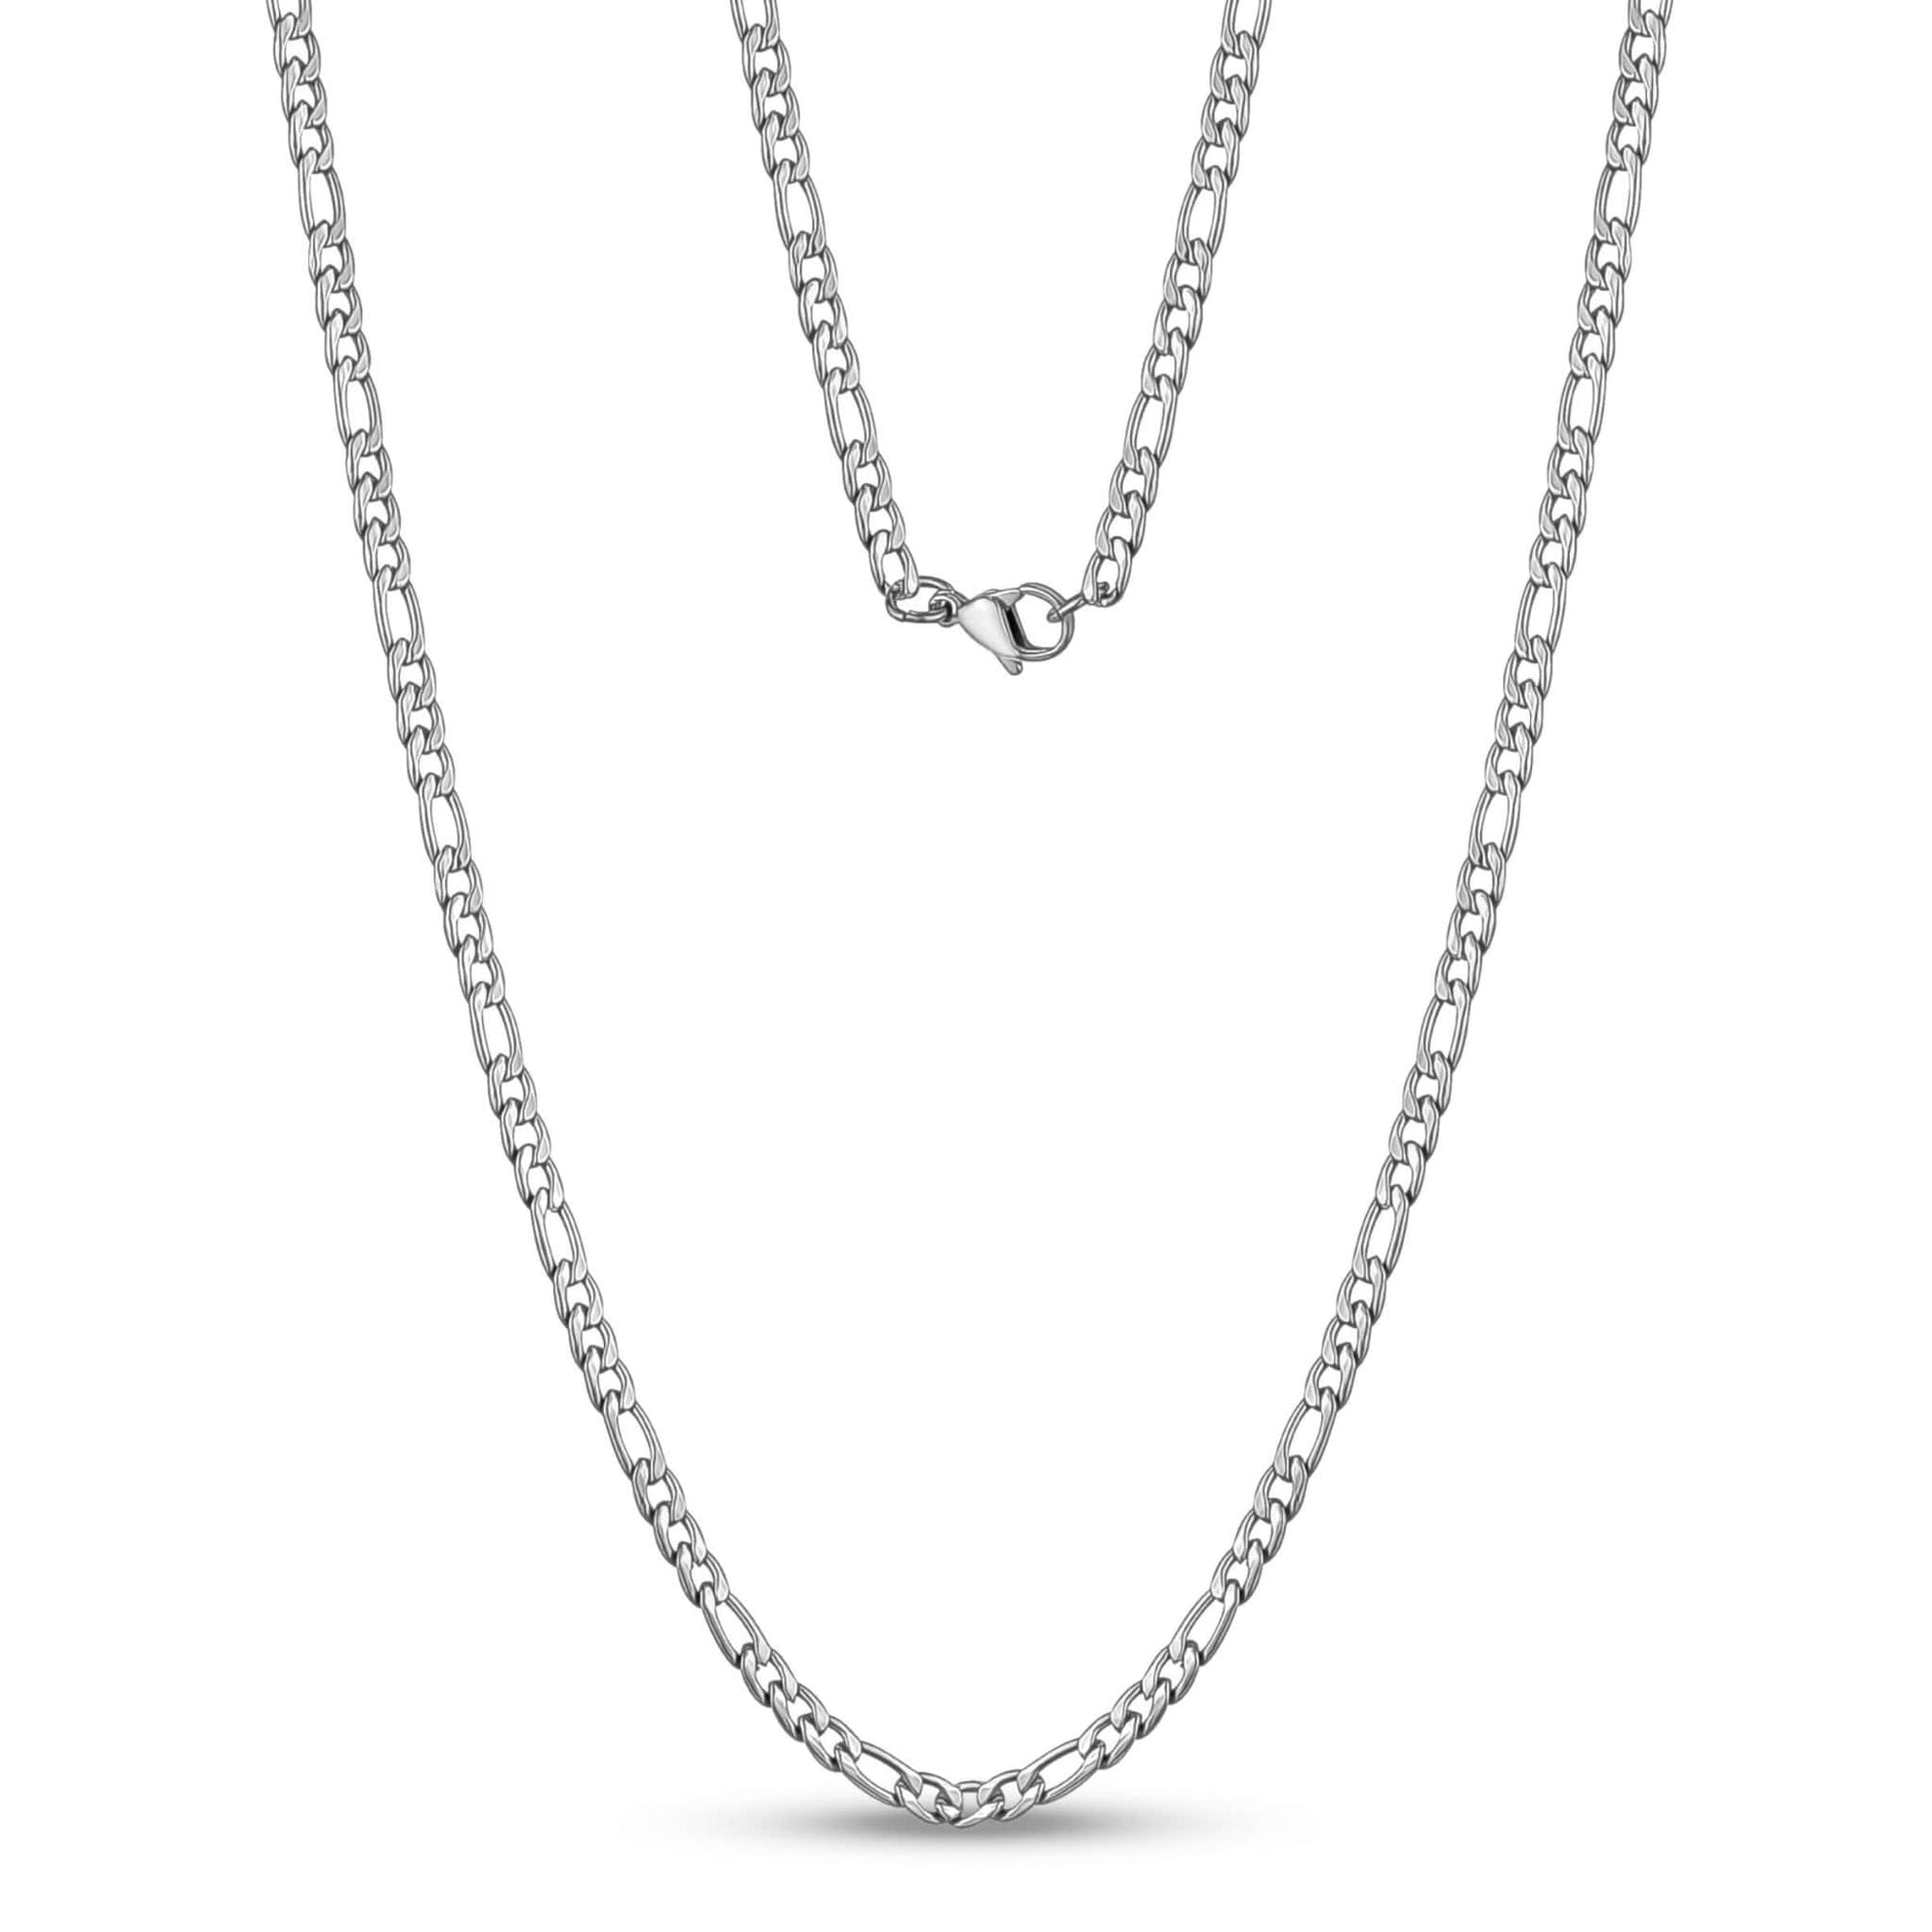 3.5mm Stainless Steel Figaro Link Chain Necklace at Arman's Jewellers